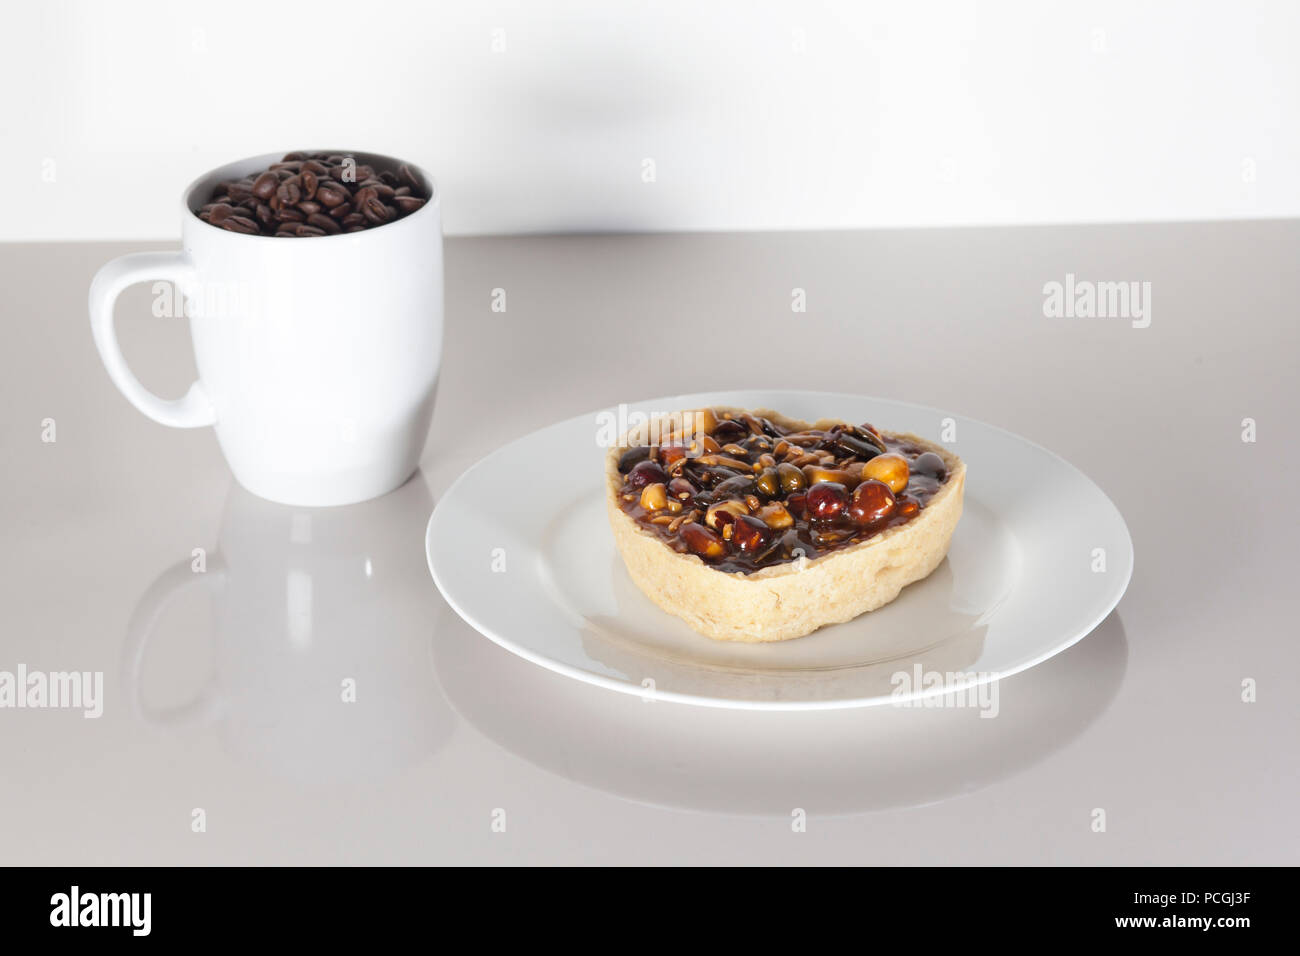 Nice and mouth watering breakfast in friendly neutral colors with textspace - Stock Image